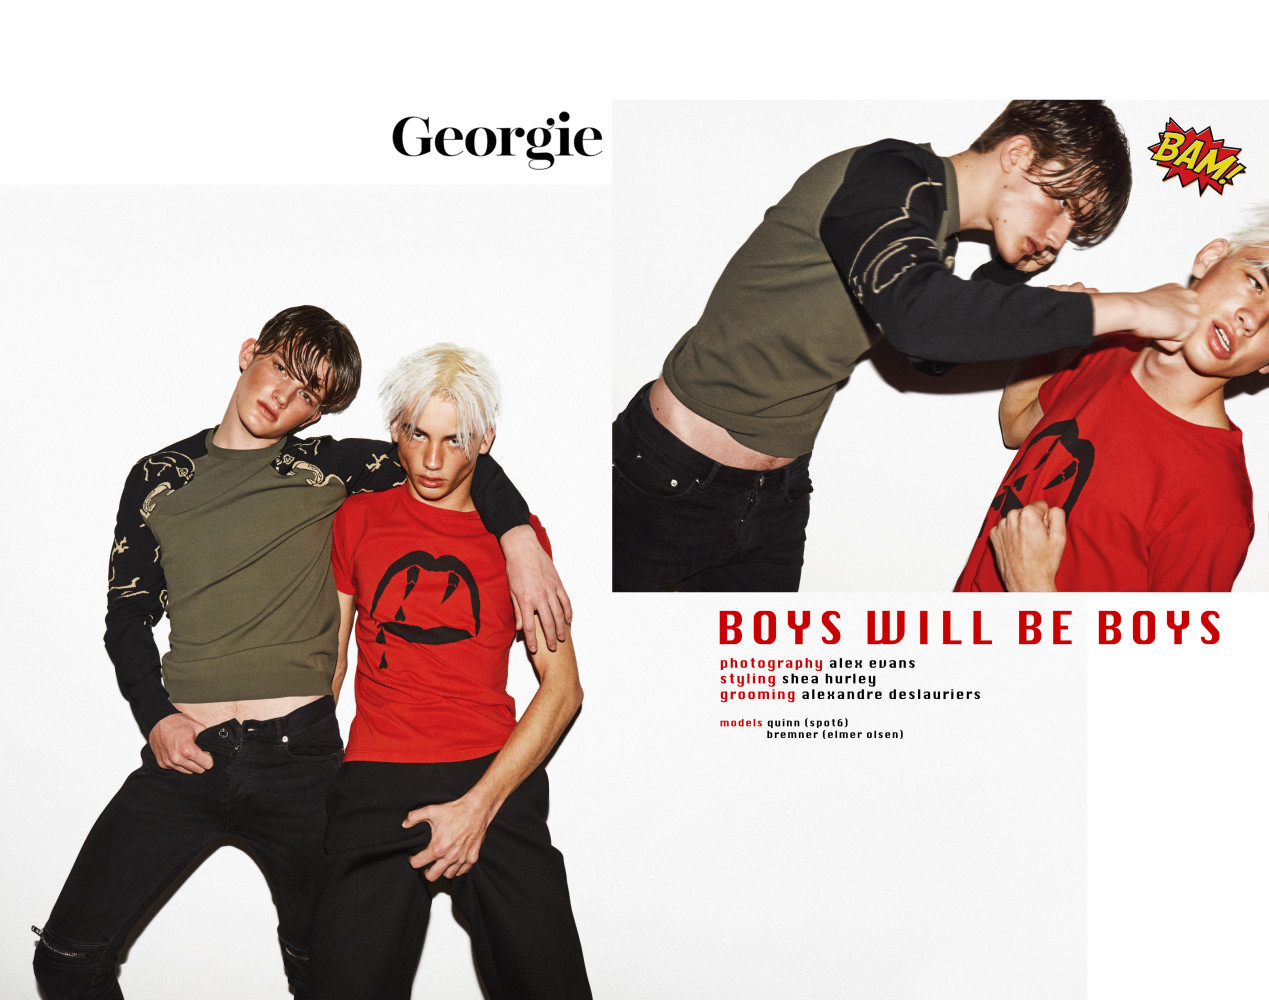 SPOTTED: BOYS WILL BE BOYS // QUINN  FOR GEORGIE MAGAZINE